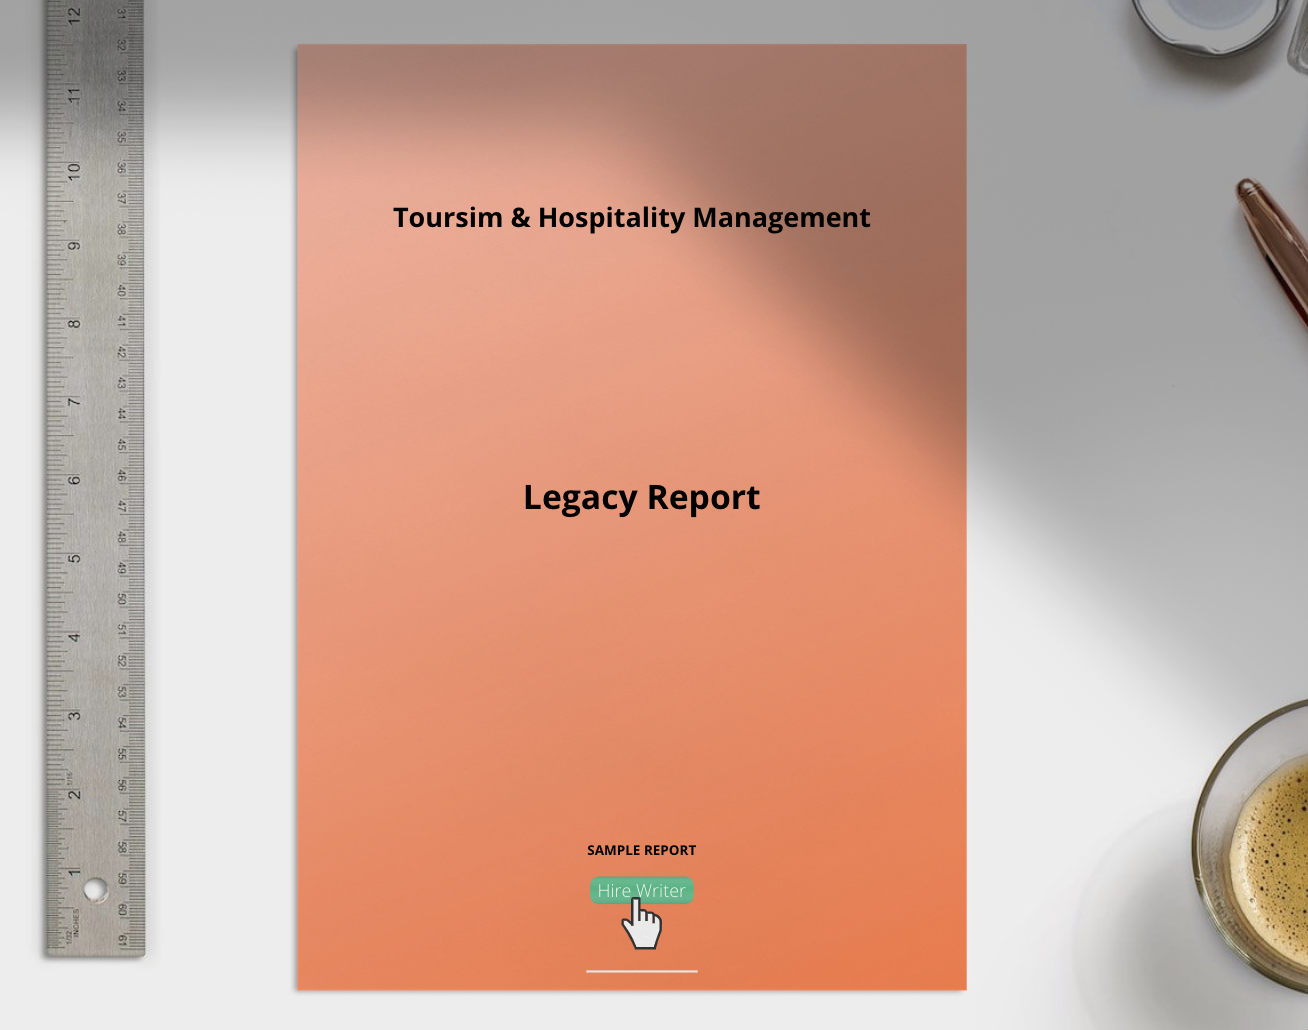 Tourism & Hospitality Management Legacy Report sample